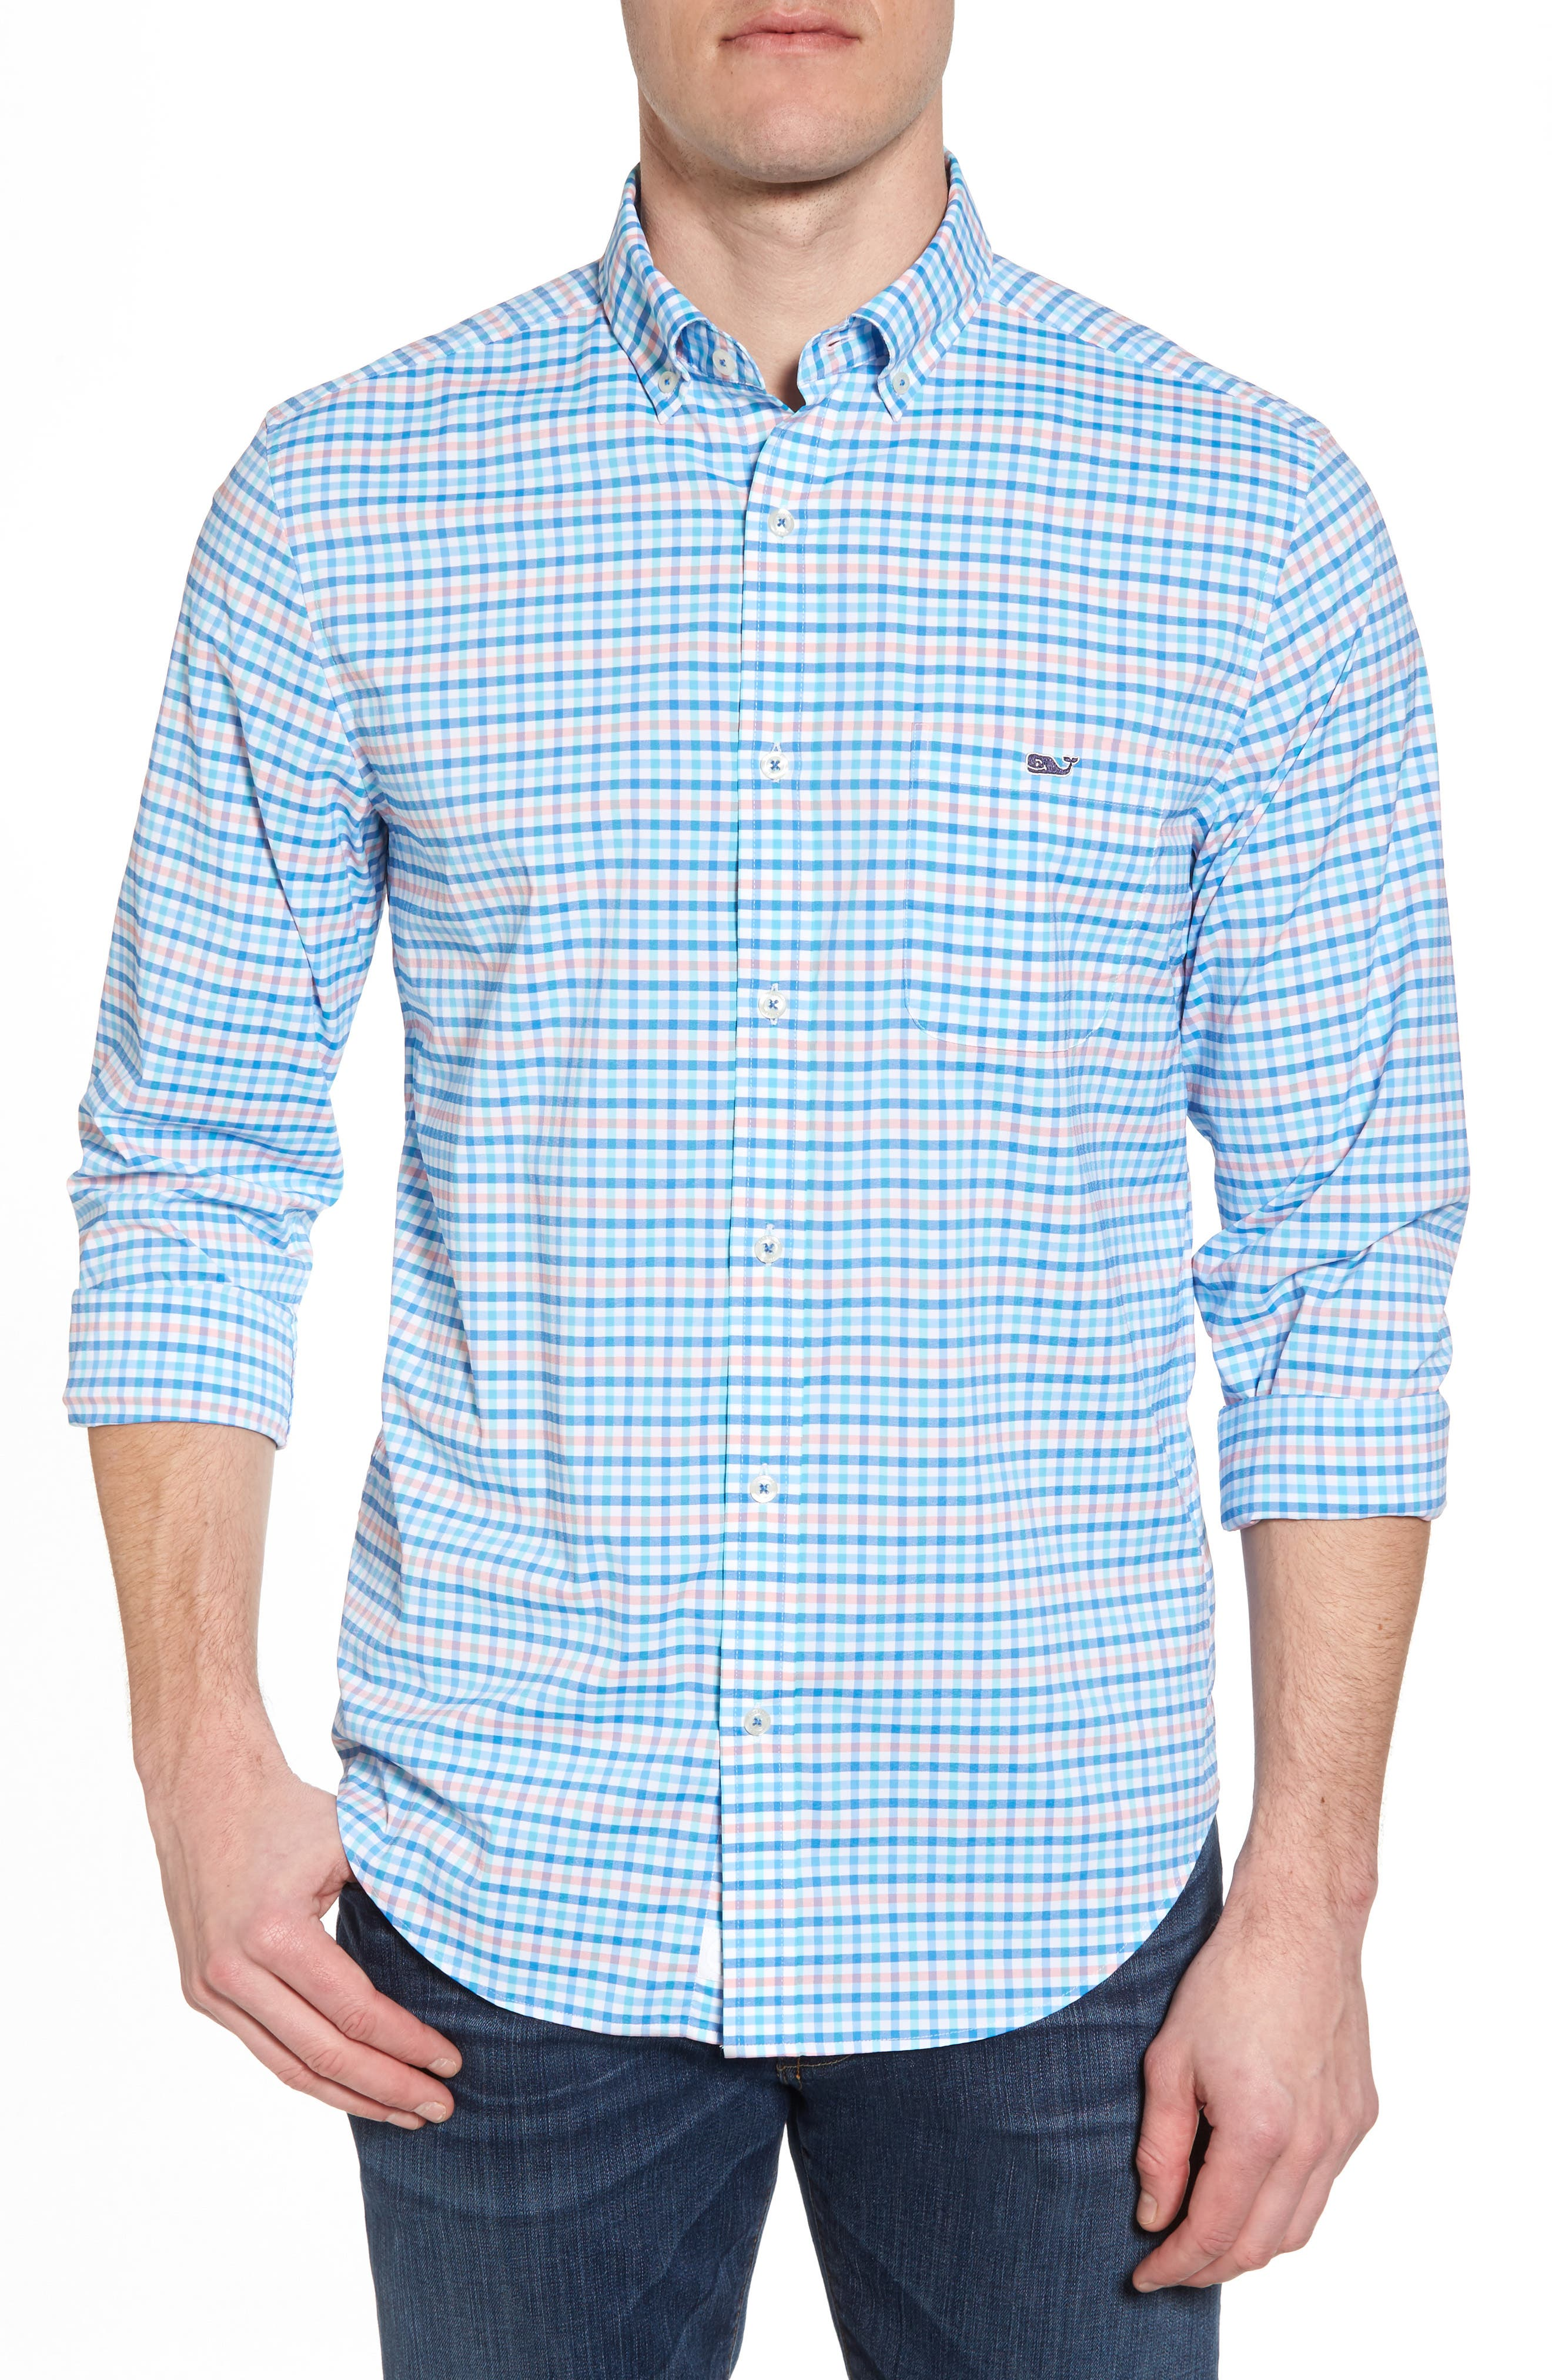 Coco Bay Classic Fit Check Performance Sport Shirt,                             Main thumbnail 1, color,                             484